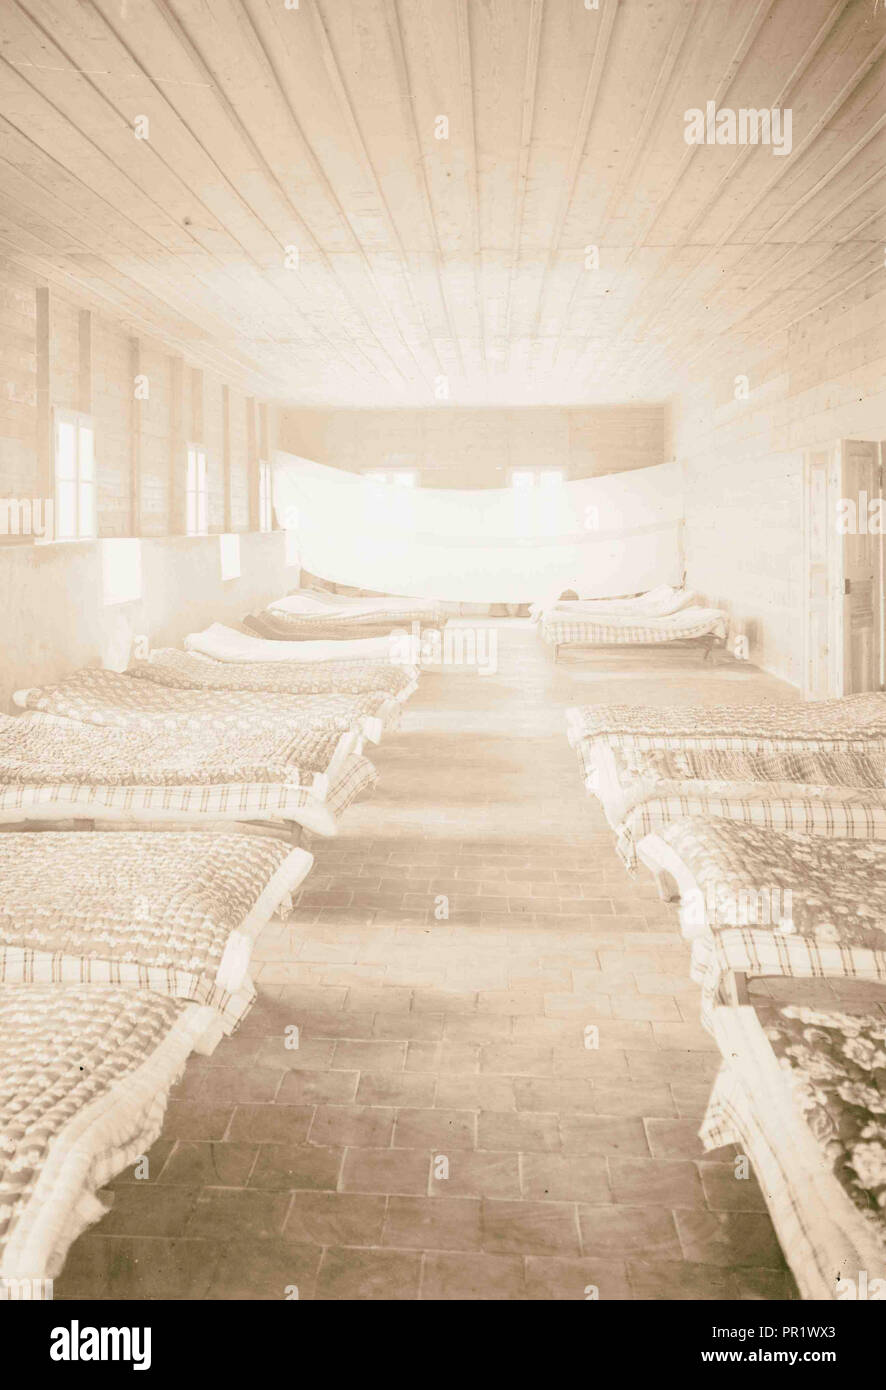 People next to buildings (left); mattresses on floor (right). 1898, Middle East, Israel and/or Palestine - Stock Image